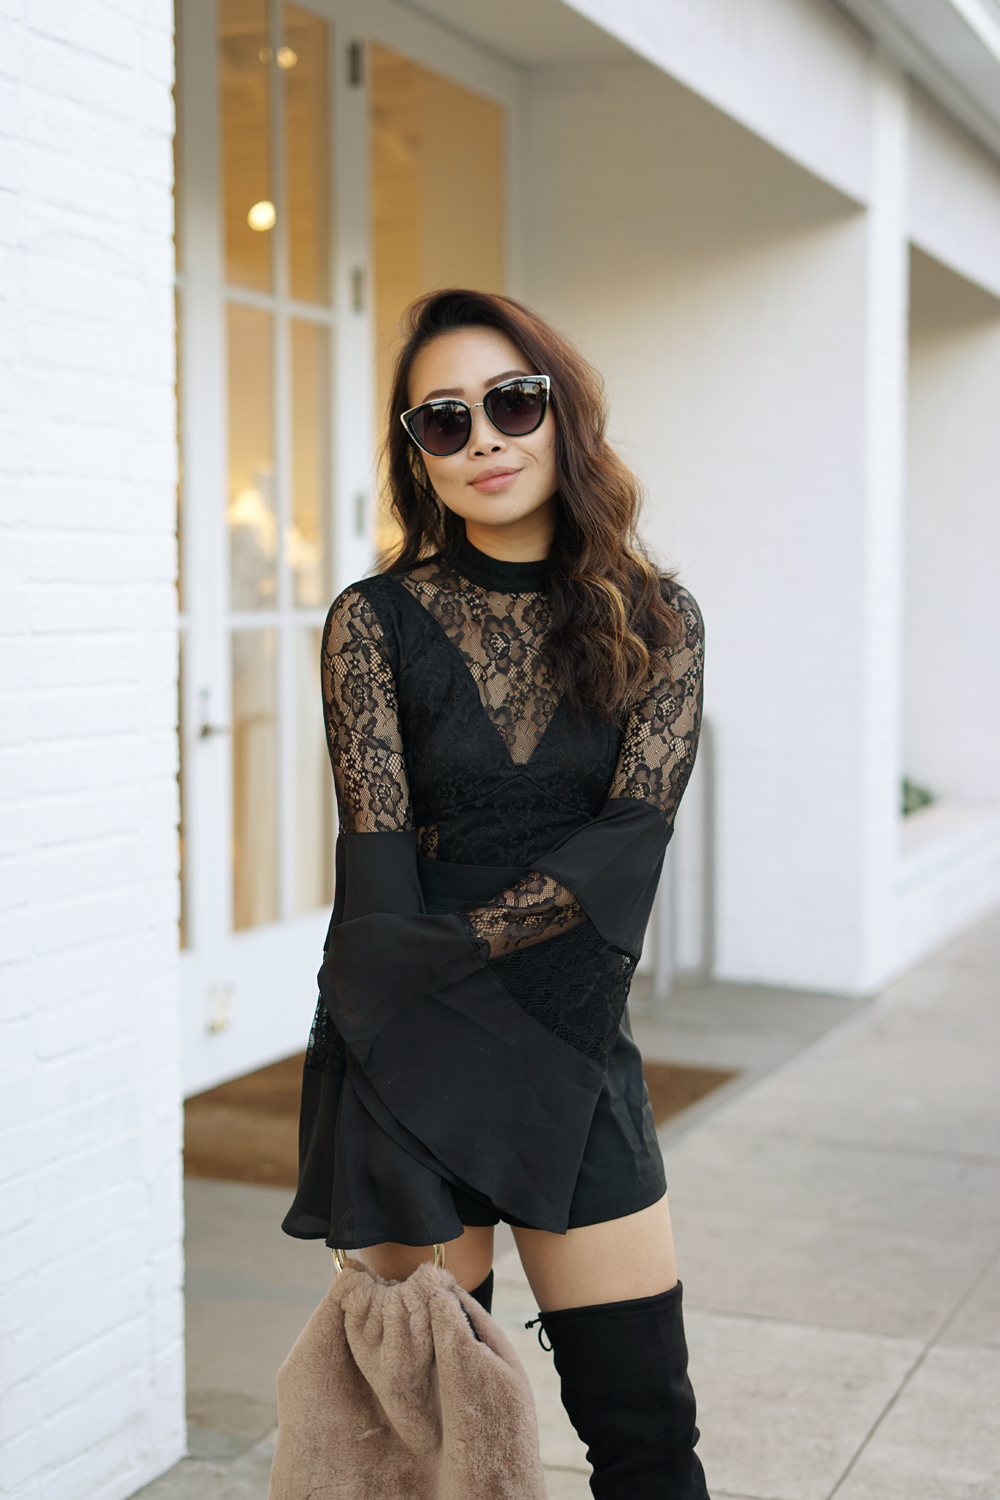 05black-lace-romper-melrose-fashion-ootd